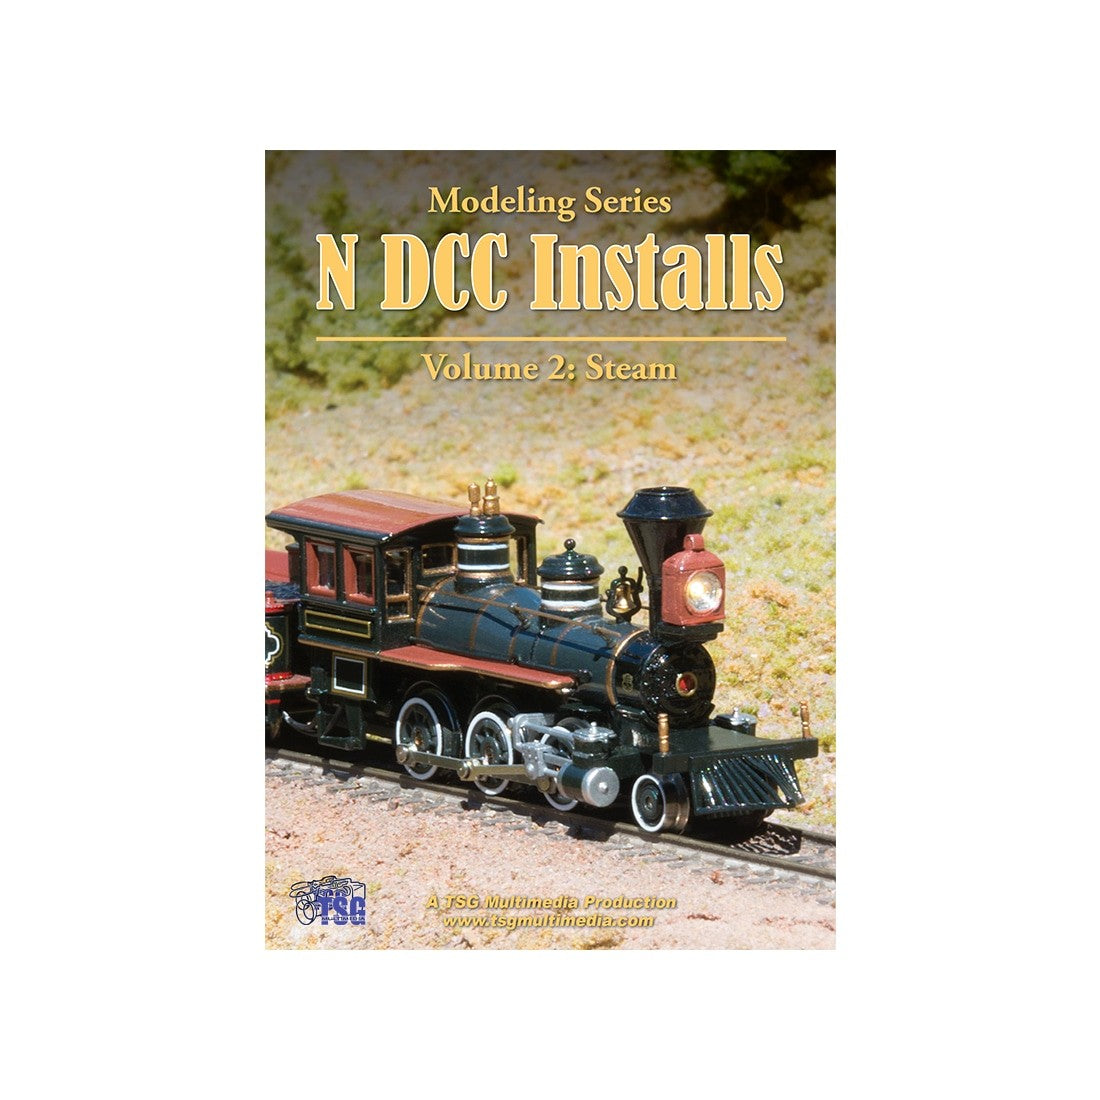 DVD: Modeling Series - N Scale DCC Installs - Volume 2 'Steam'